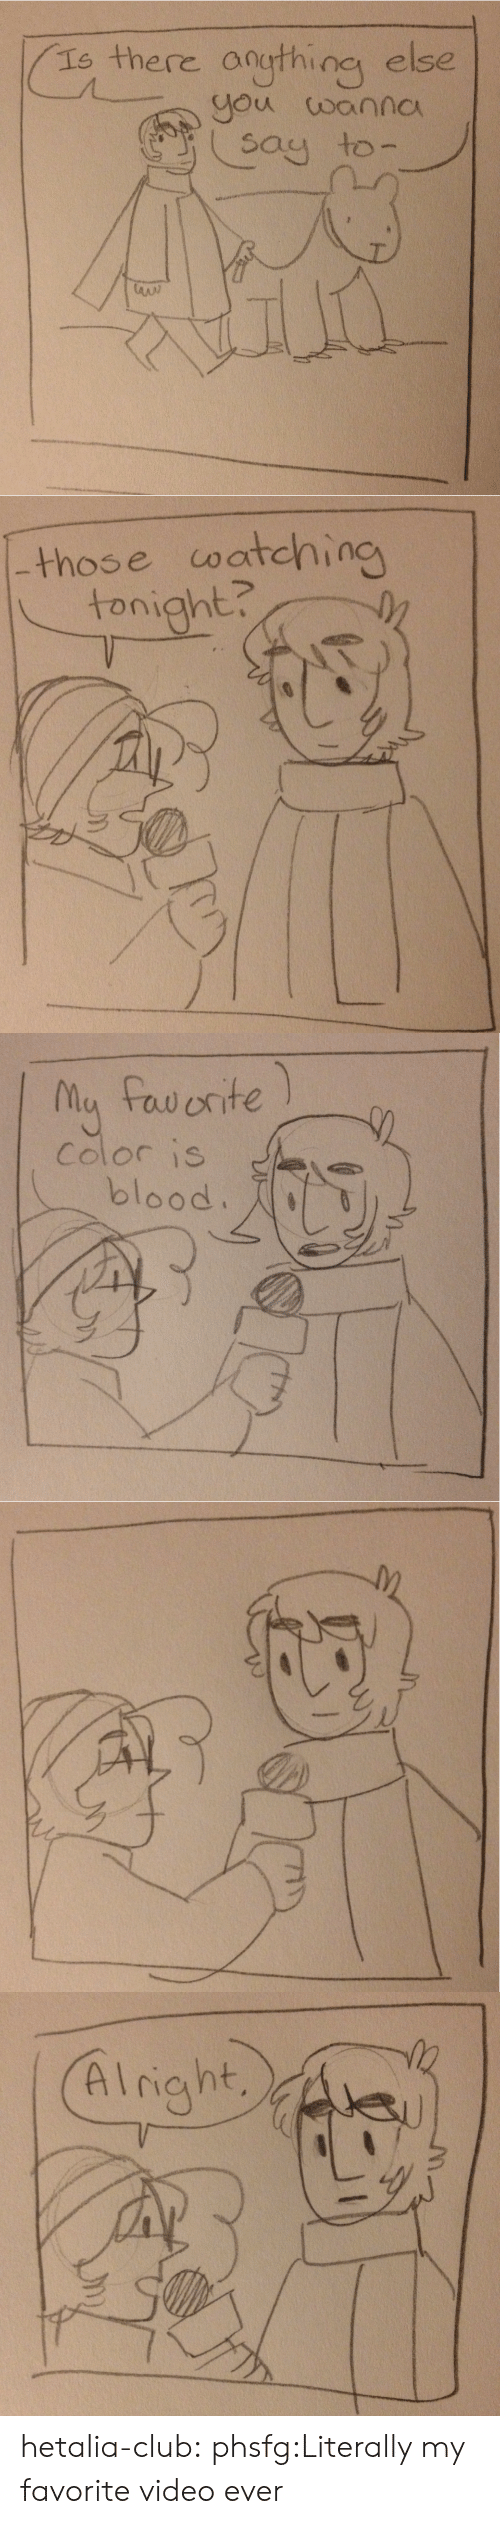 Club, Target, and Tumblr: Is there oouthing else  you wannc  say to   those coatching  tonight?   Ma faw orite  Color IS  blood.   Alriaht hetalia-club:  phsfg:Literally my favorite video ever